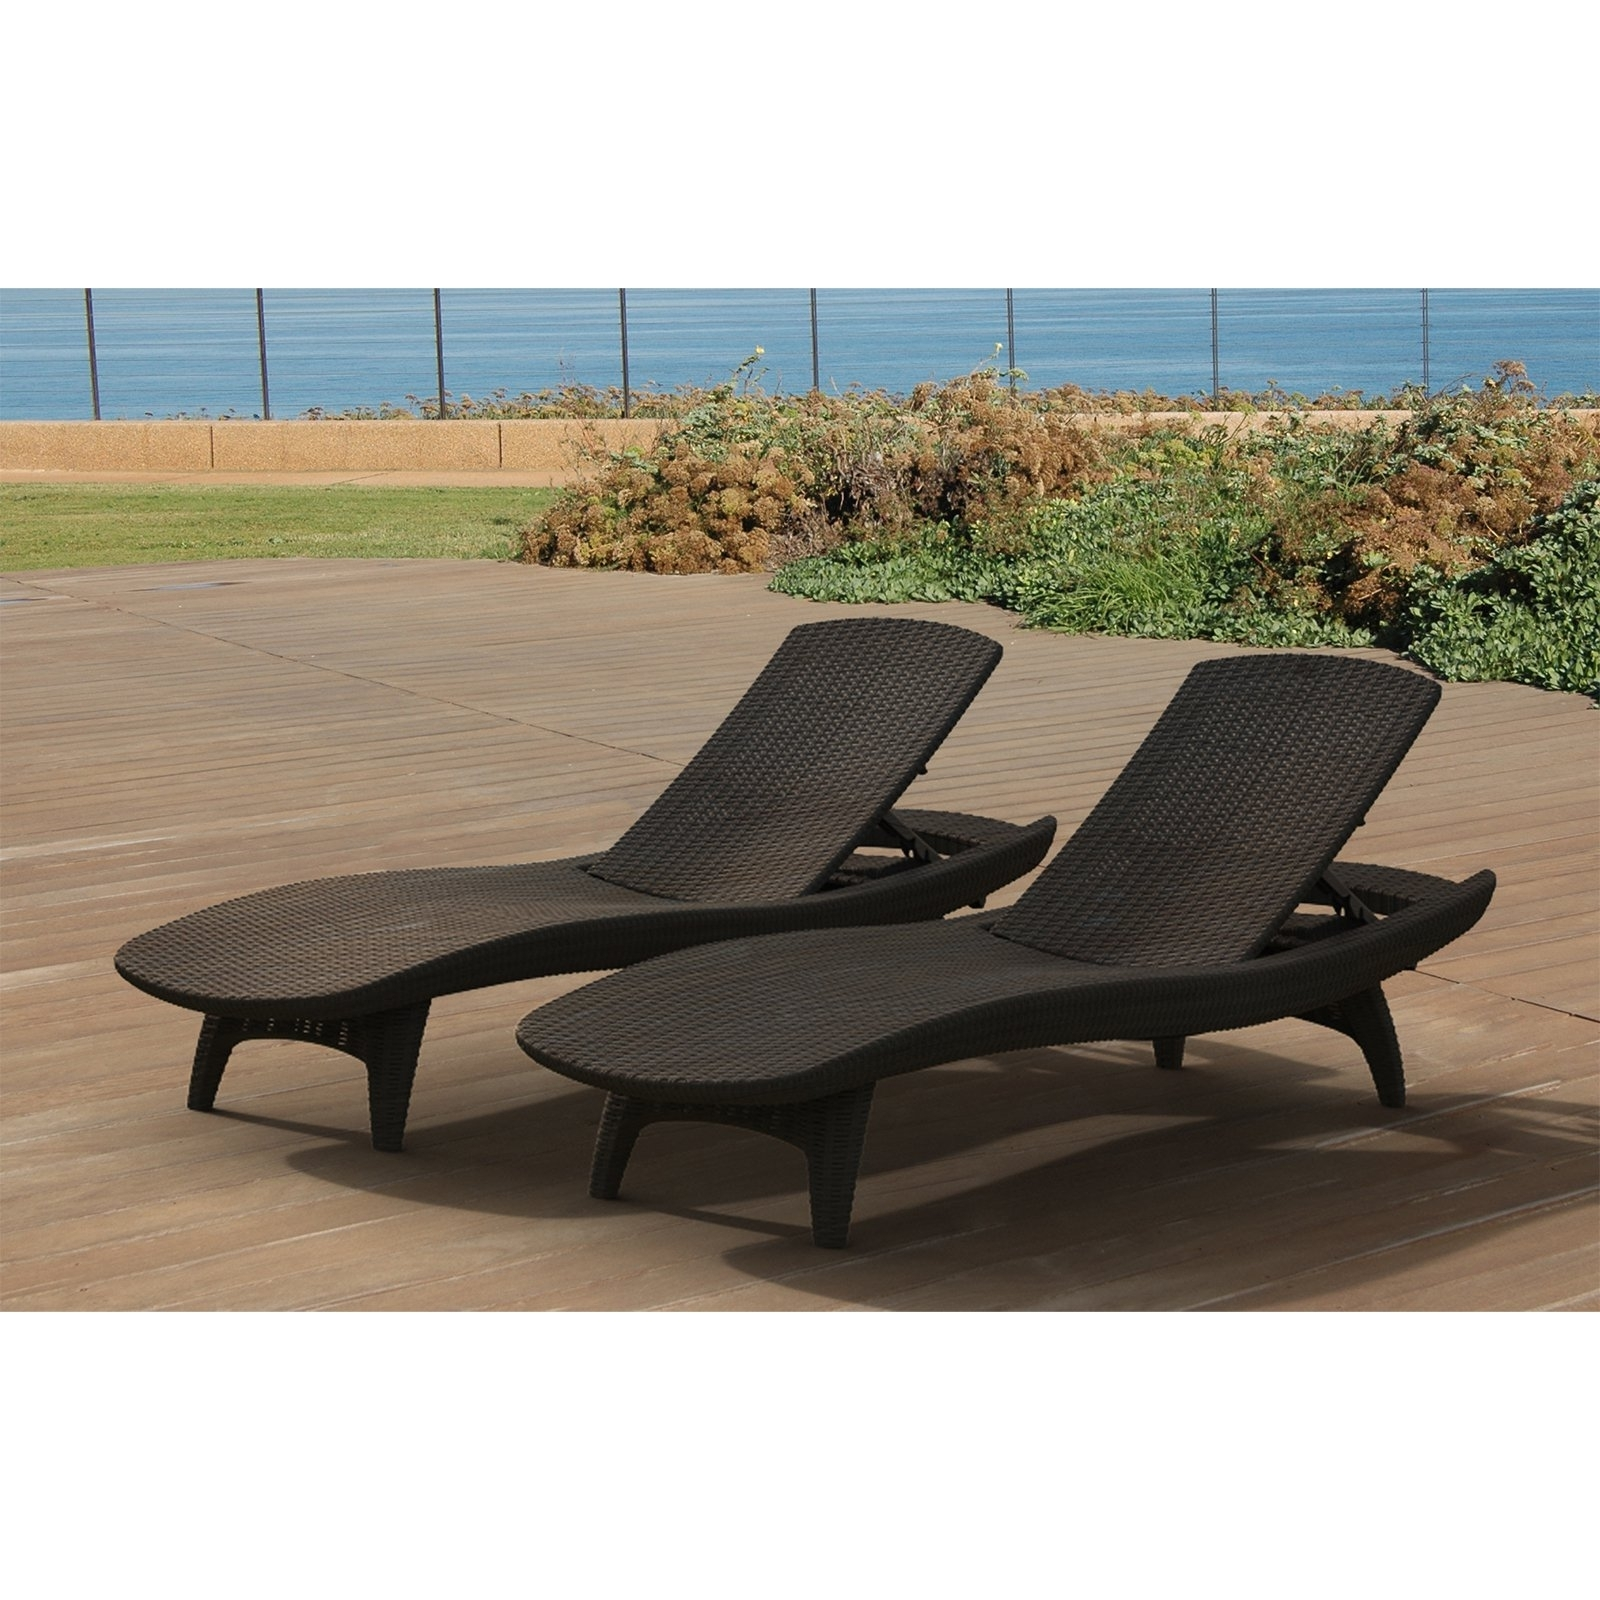 Outdoor Chaise Lounge Chairs Under $200 Inside Current Keter Outdoor Chaise Lounge – Set Of  (View 13 of 15)